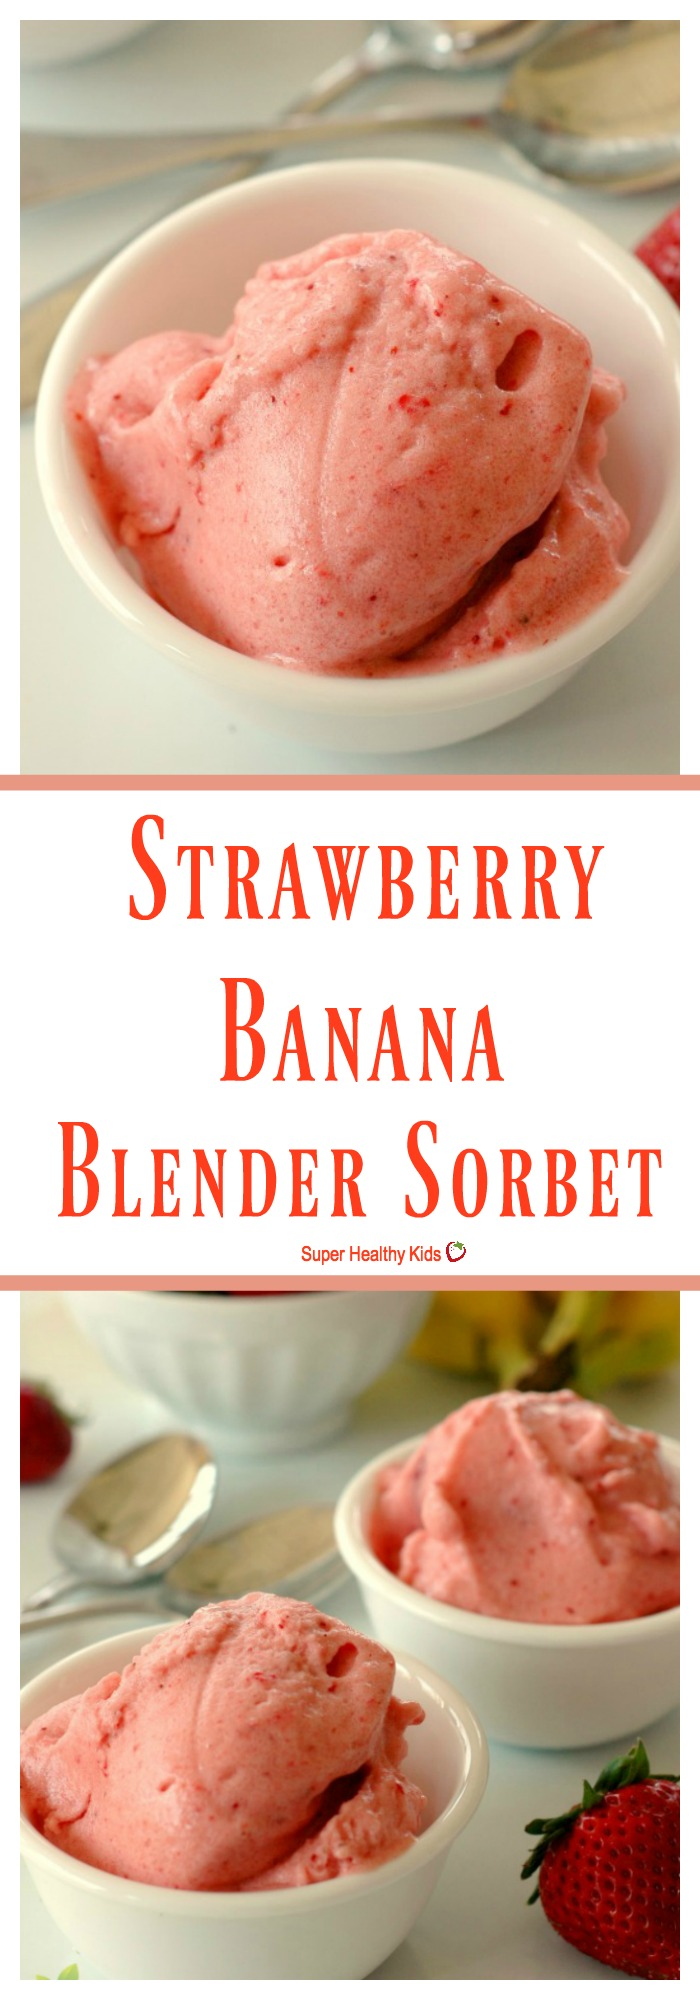 FOOD - Strawberry Banana Blender Sorbet. Give your kids a treat without the refined sugar and boost their immunity! http://www.superhealthykids.com/strawberry-banana-blender-sorbet/